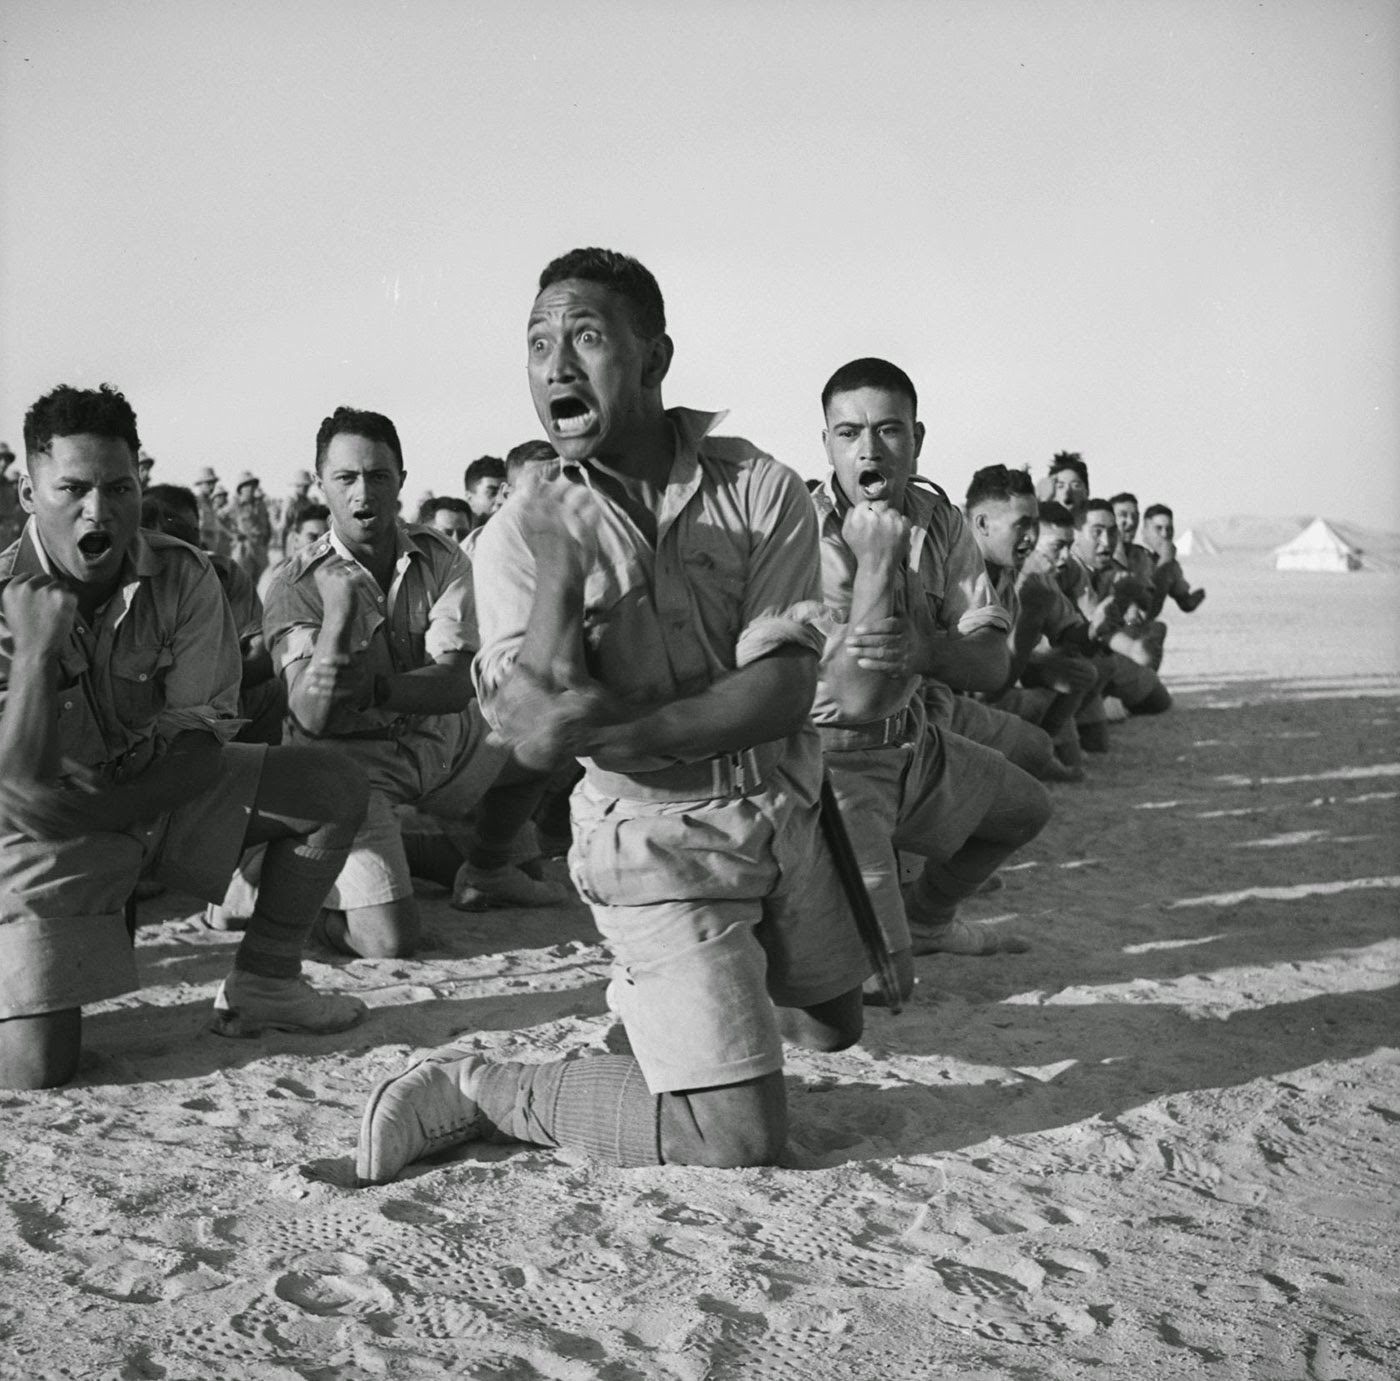 Members of the Maori Battalion who had fought in Greece perform a Haka for the King of Greece at Helwan, Egypt in June 1941.